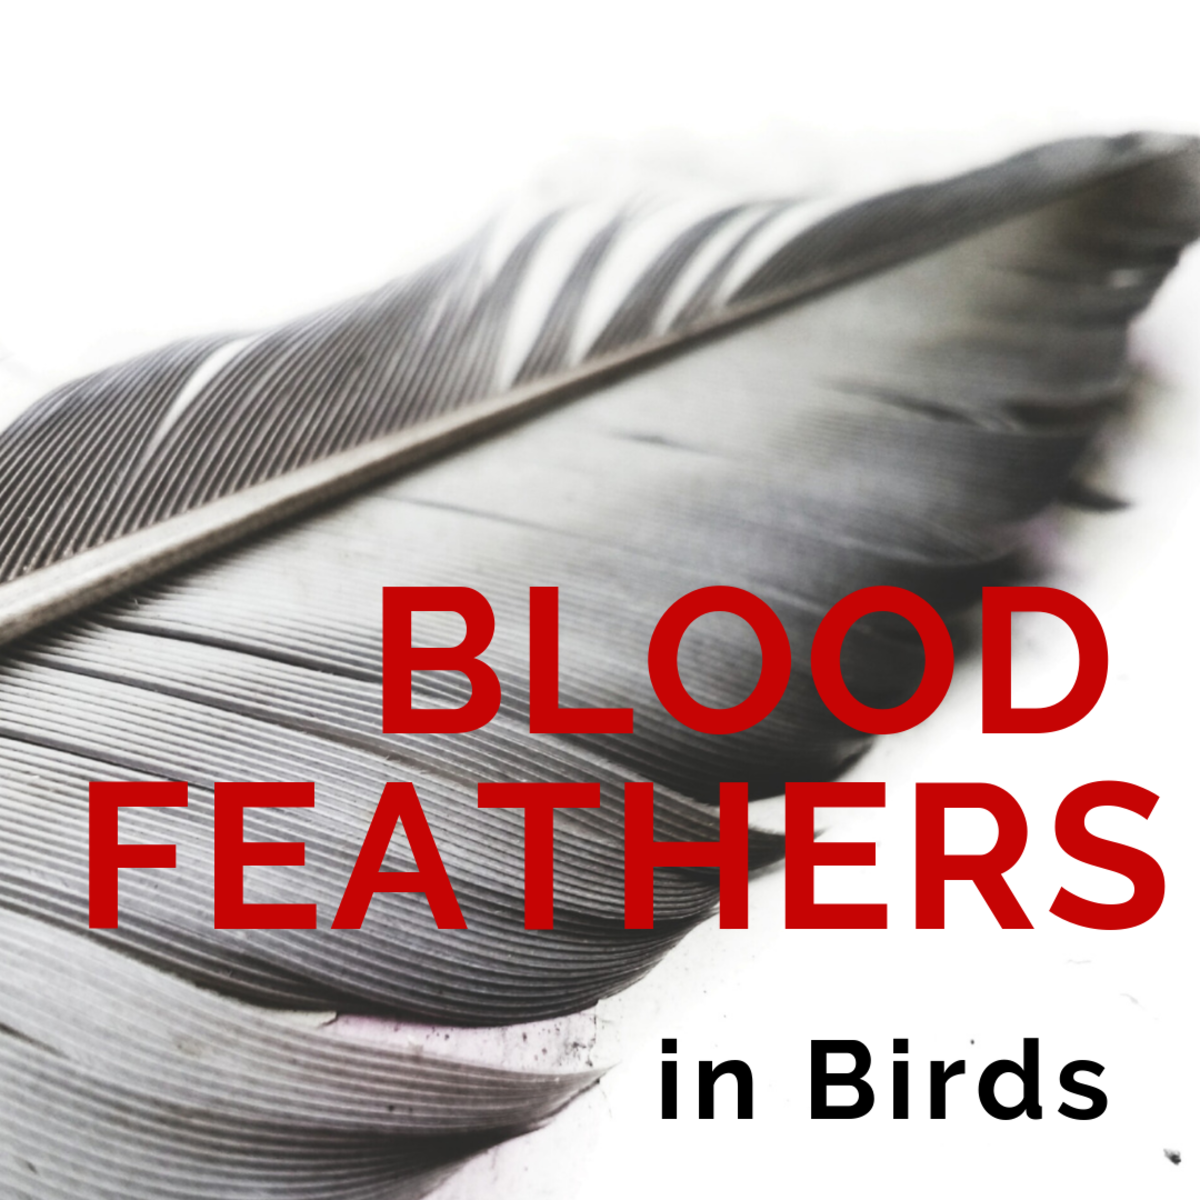 Blood Feathers in Birds